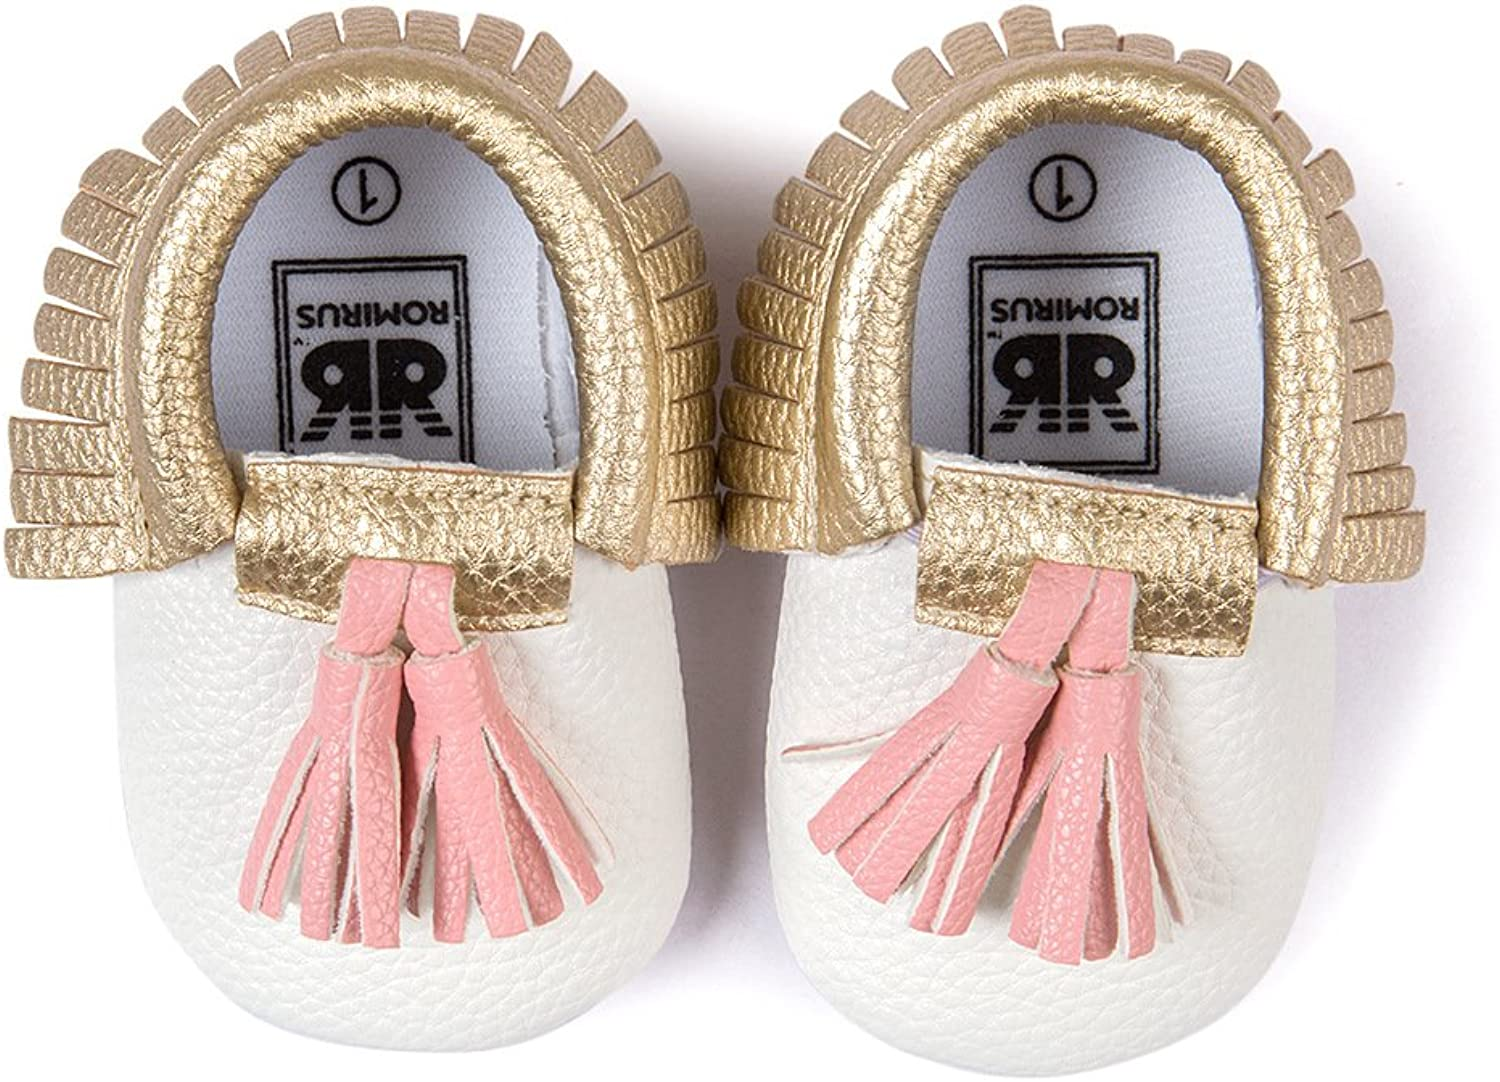 Save Beautiful Infant Baby Soft Sole PU Leather Boy Girl Toddler Moccasin Prewalker shoes